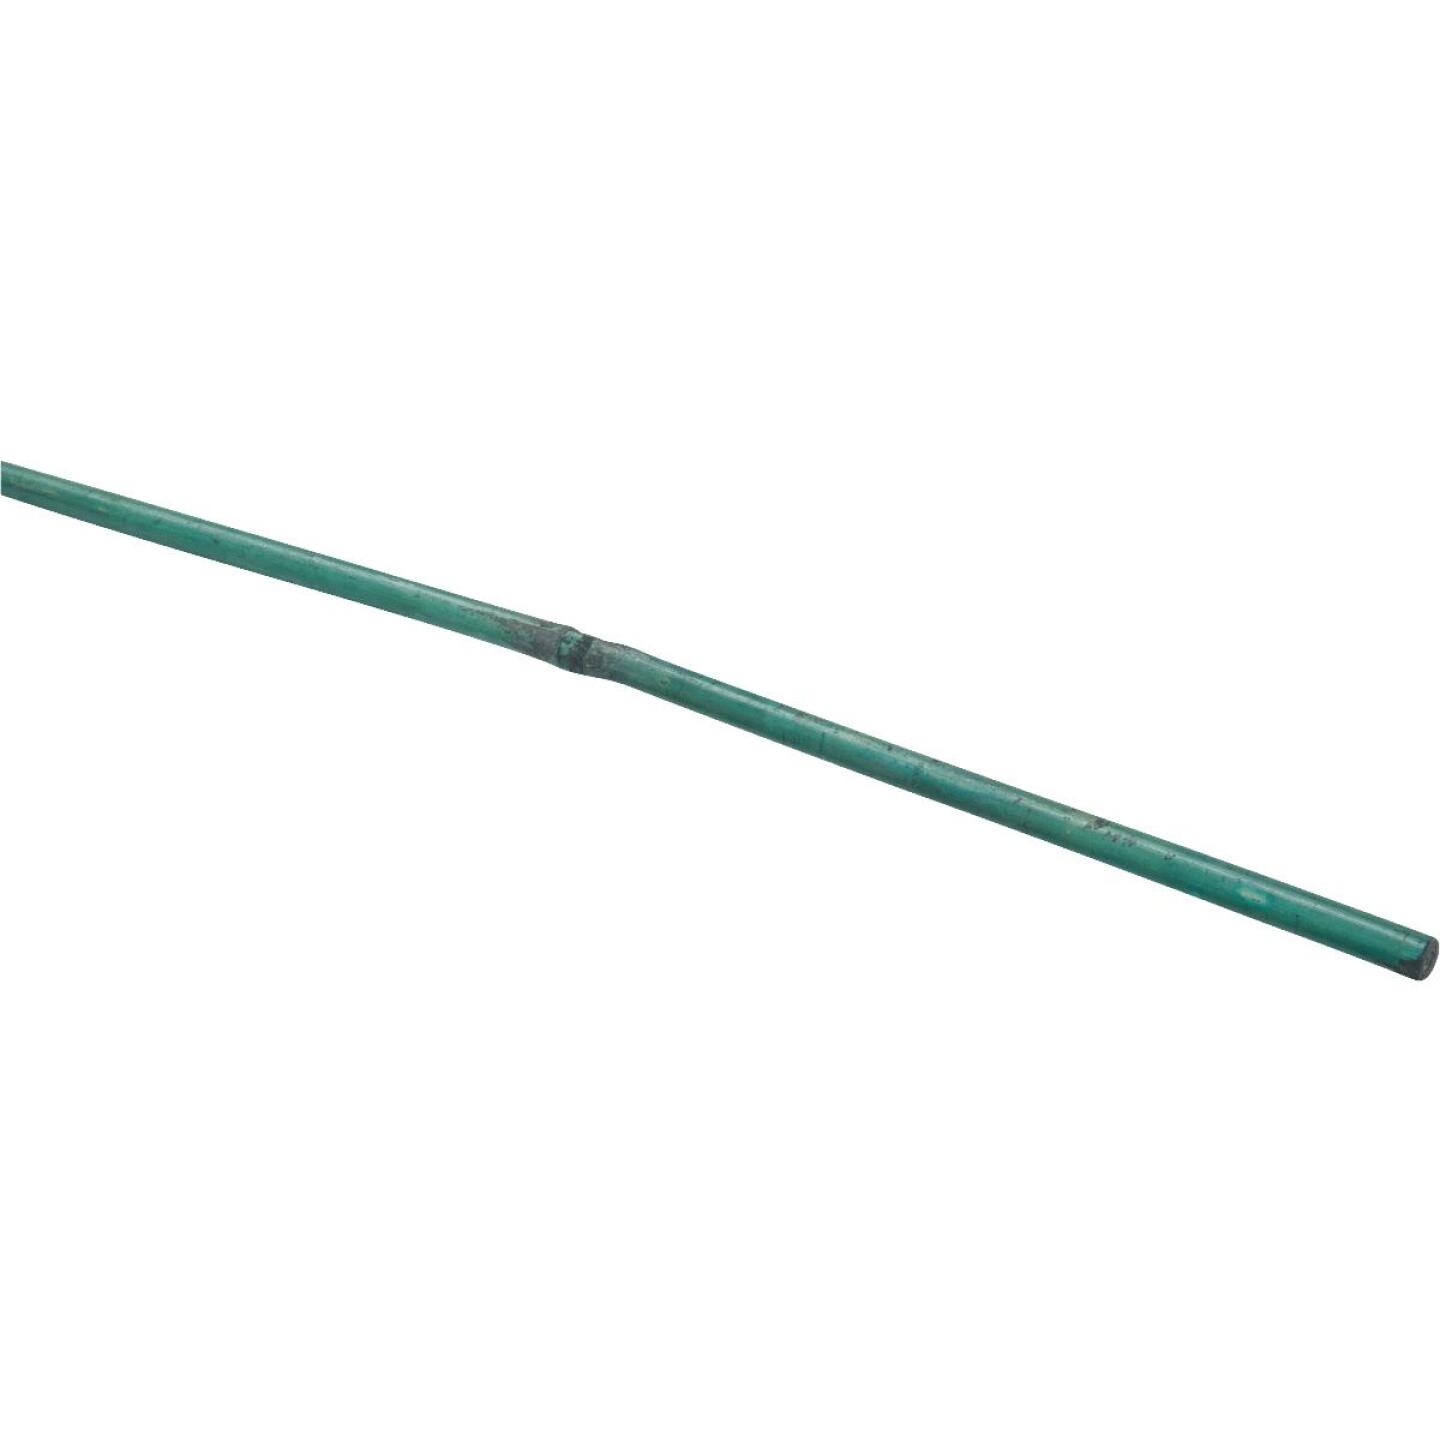 Bond 5 Ft. Green Bamboo Plant Stakes (6-Pack) Image 3